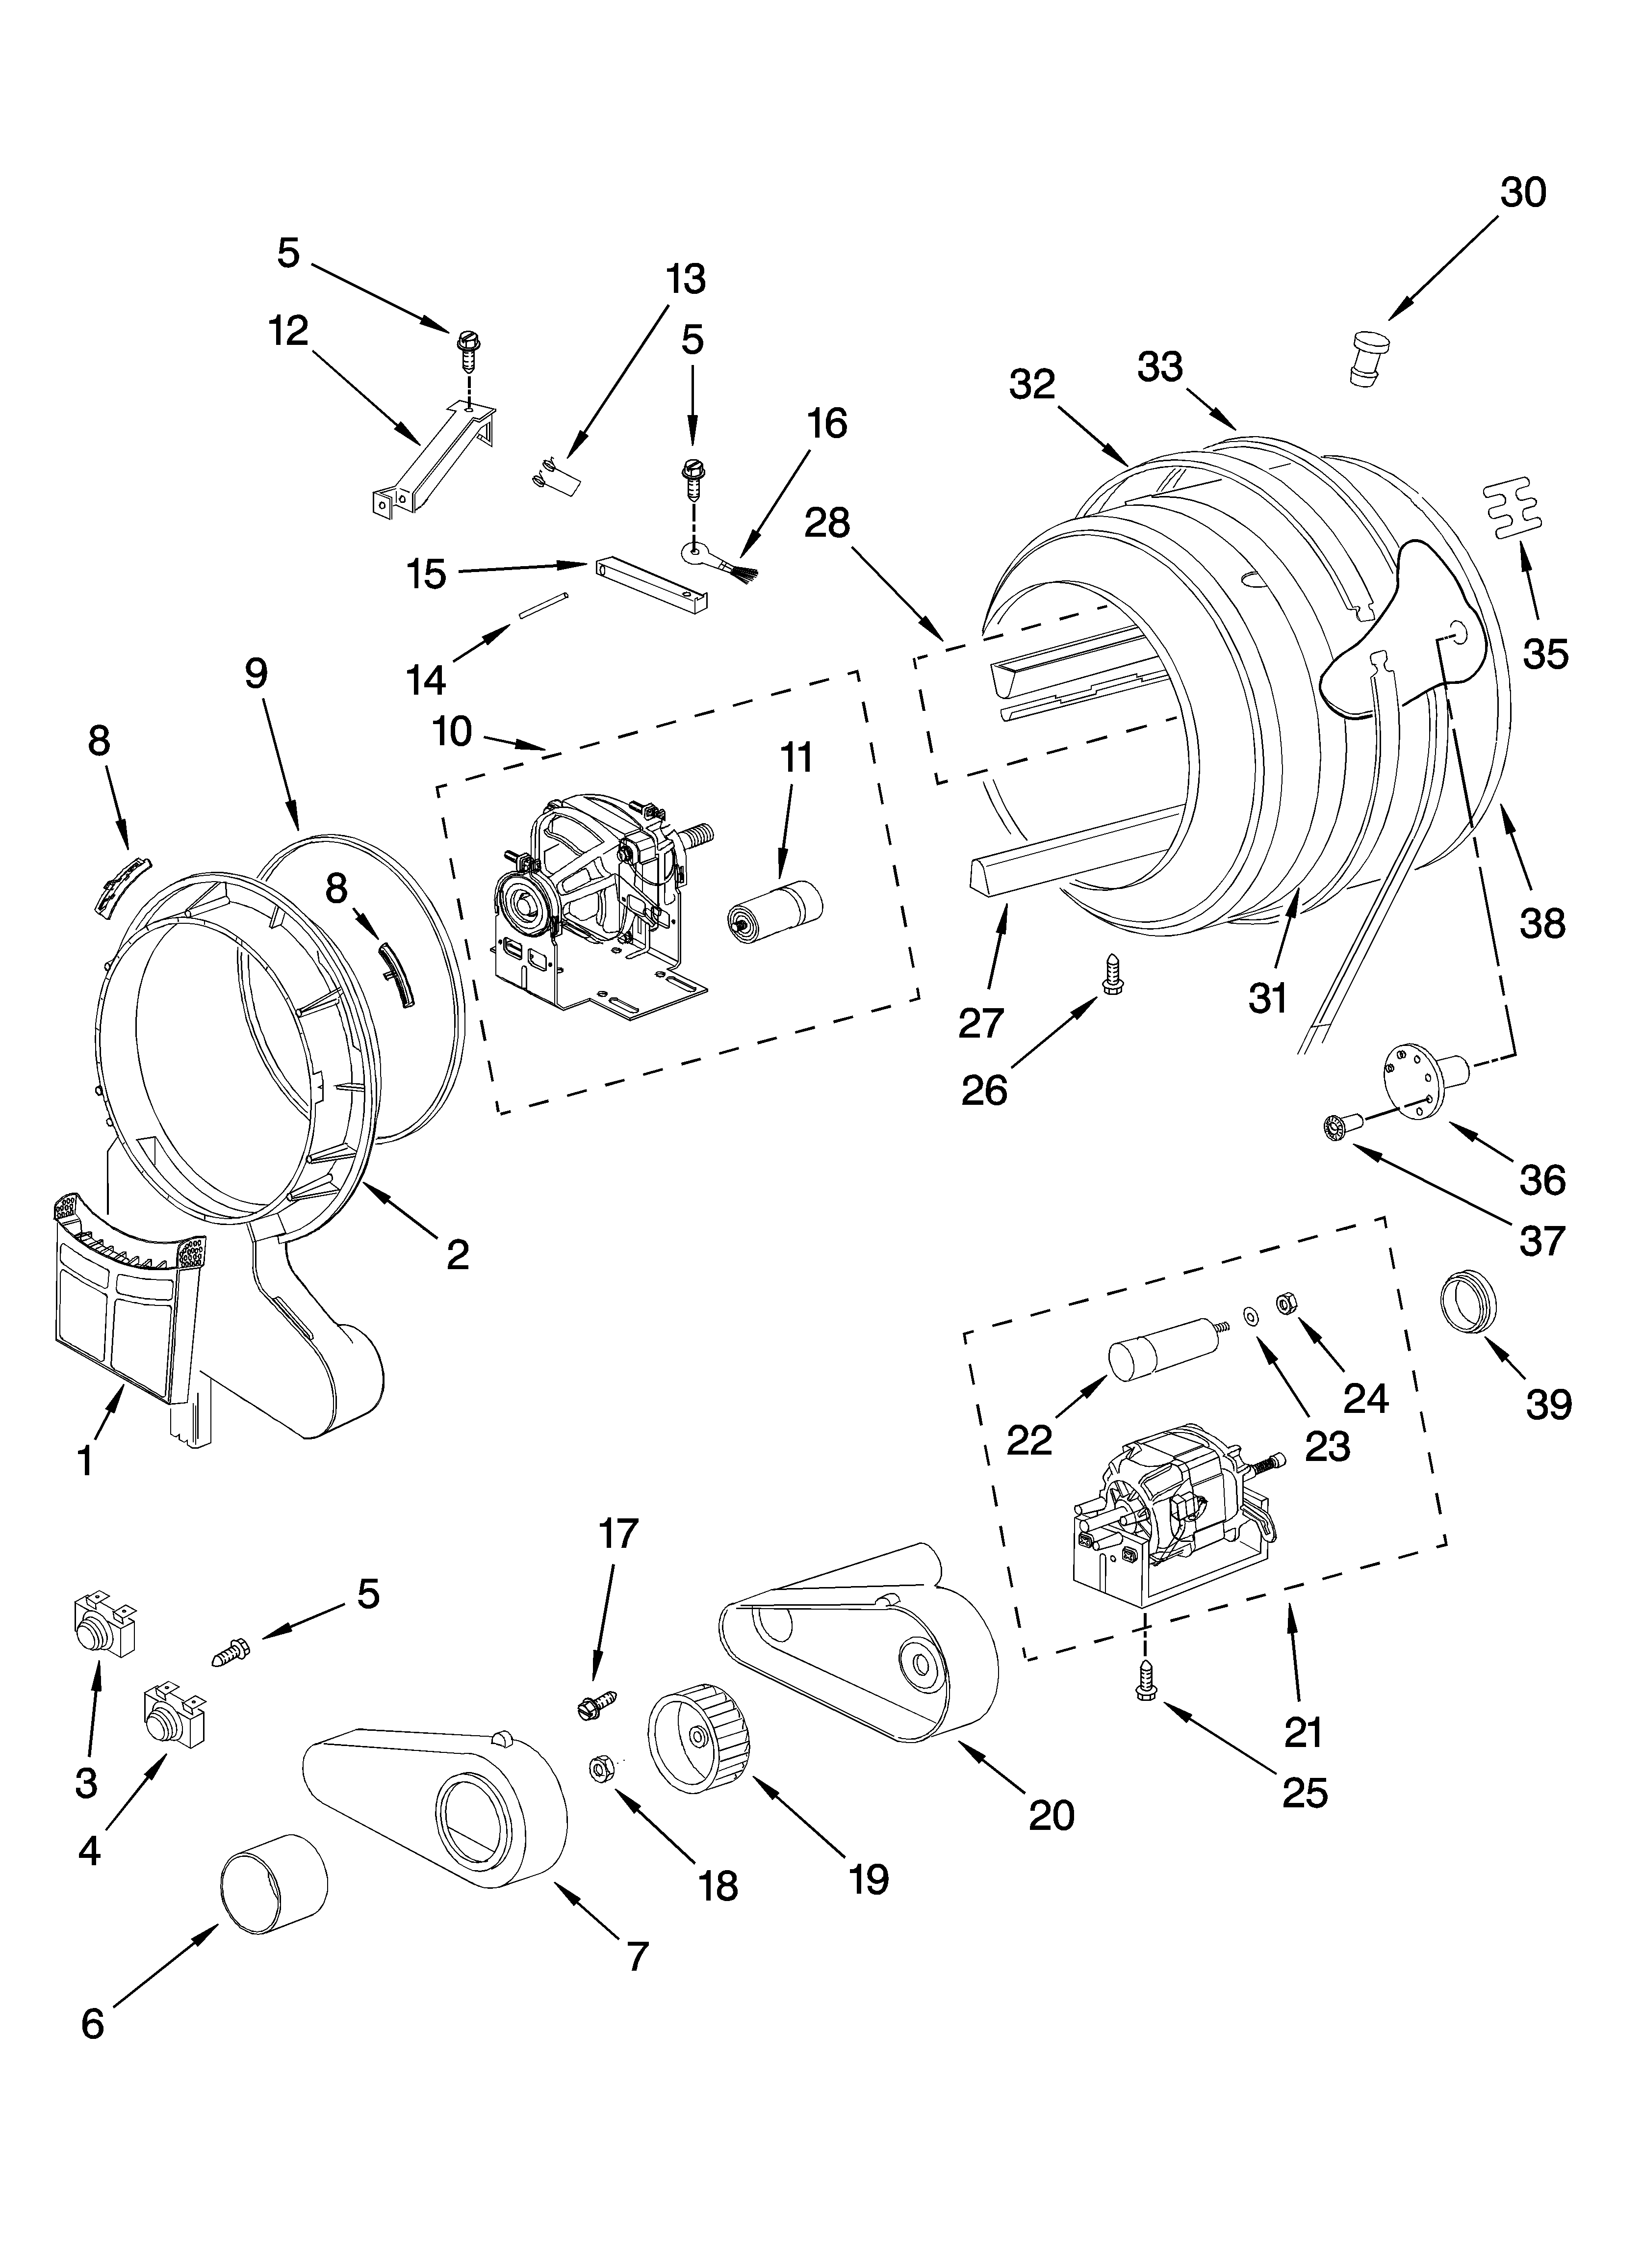 4 prong dryer outlet wiring diagram kenmore